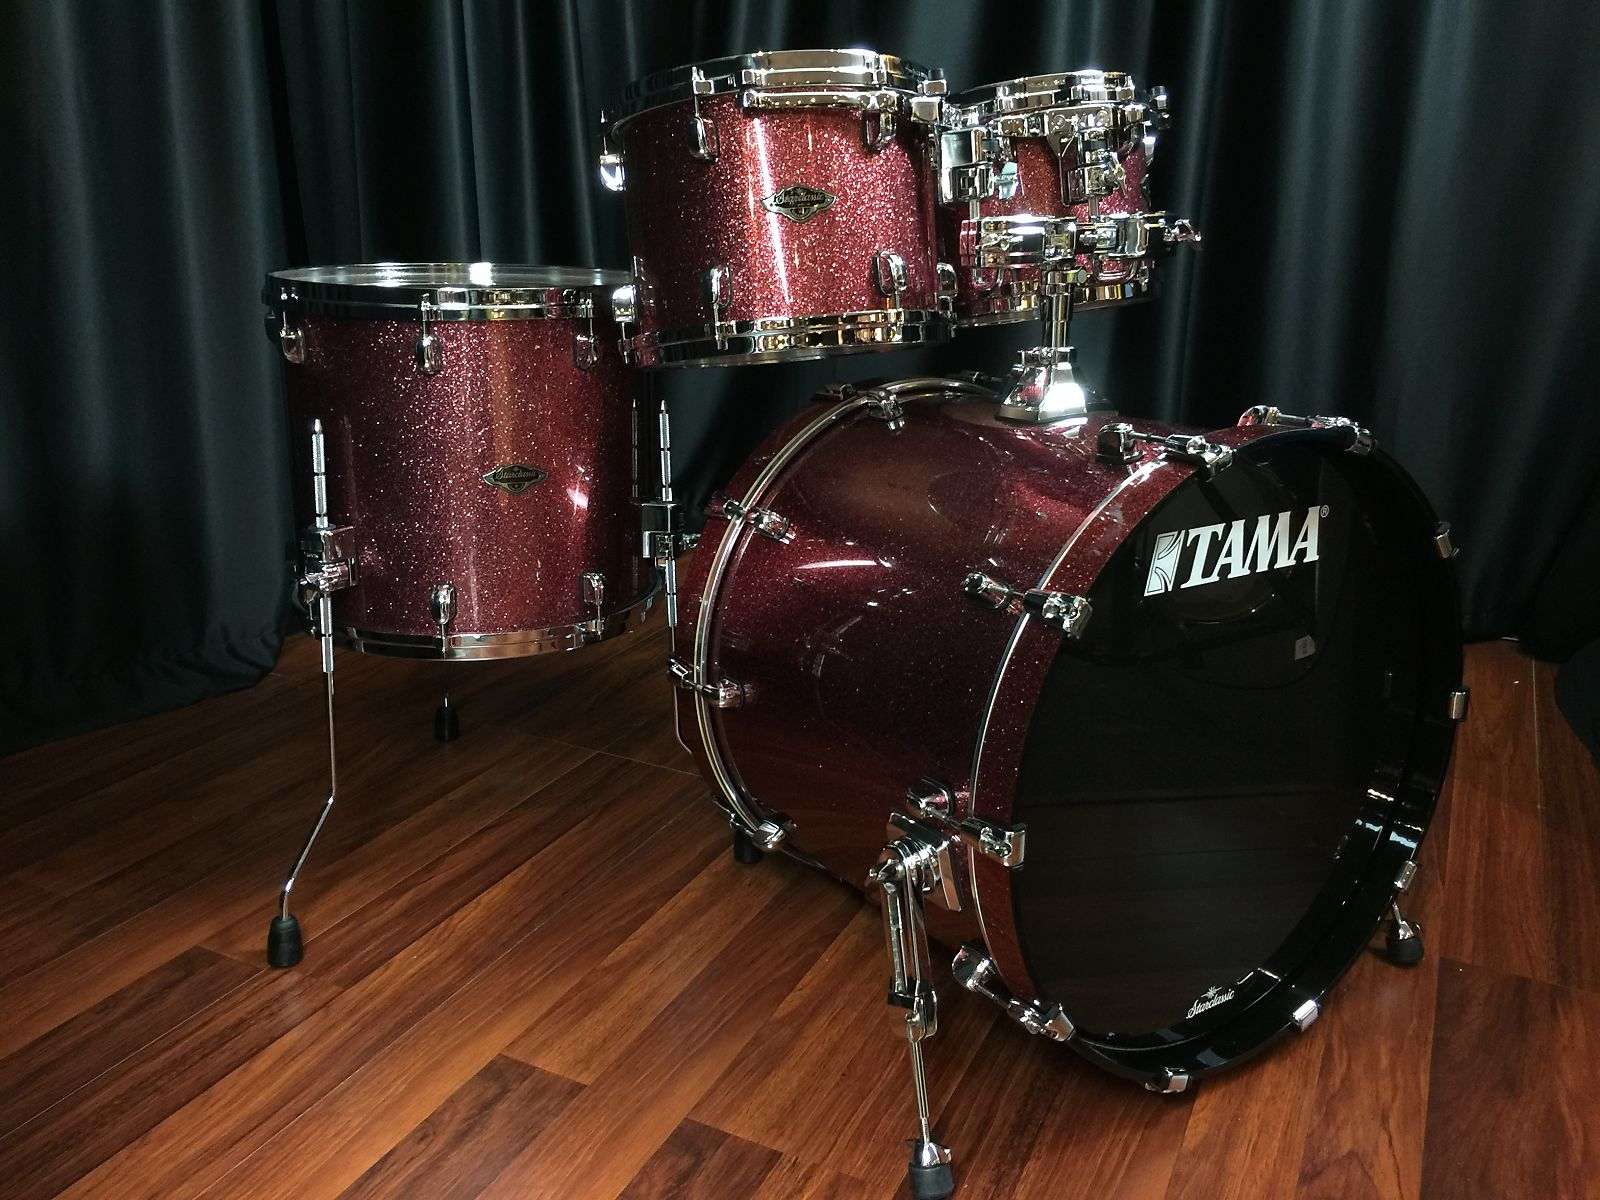 Tama Drums Sets Starclassic Performer B B Coral Red Sparkle Lacquer